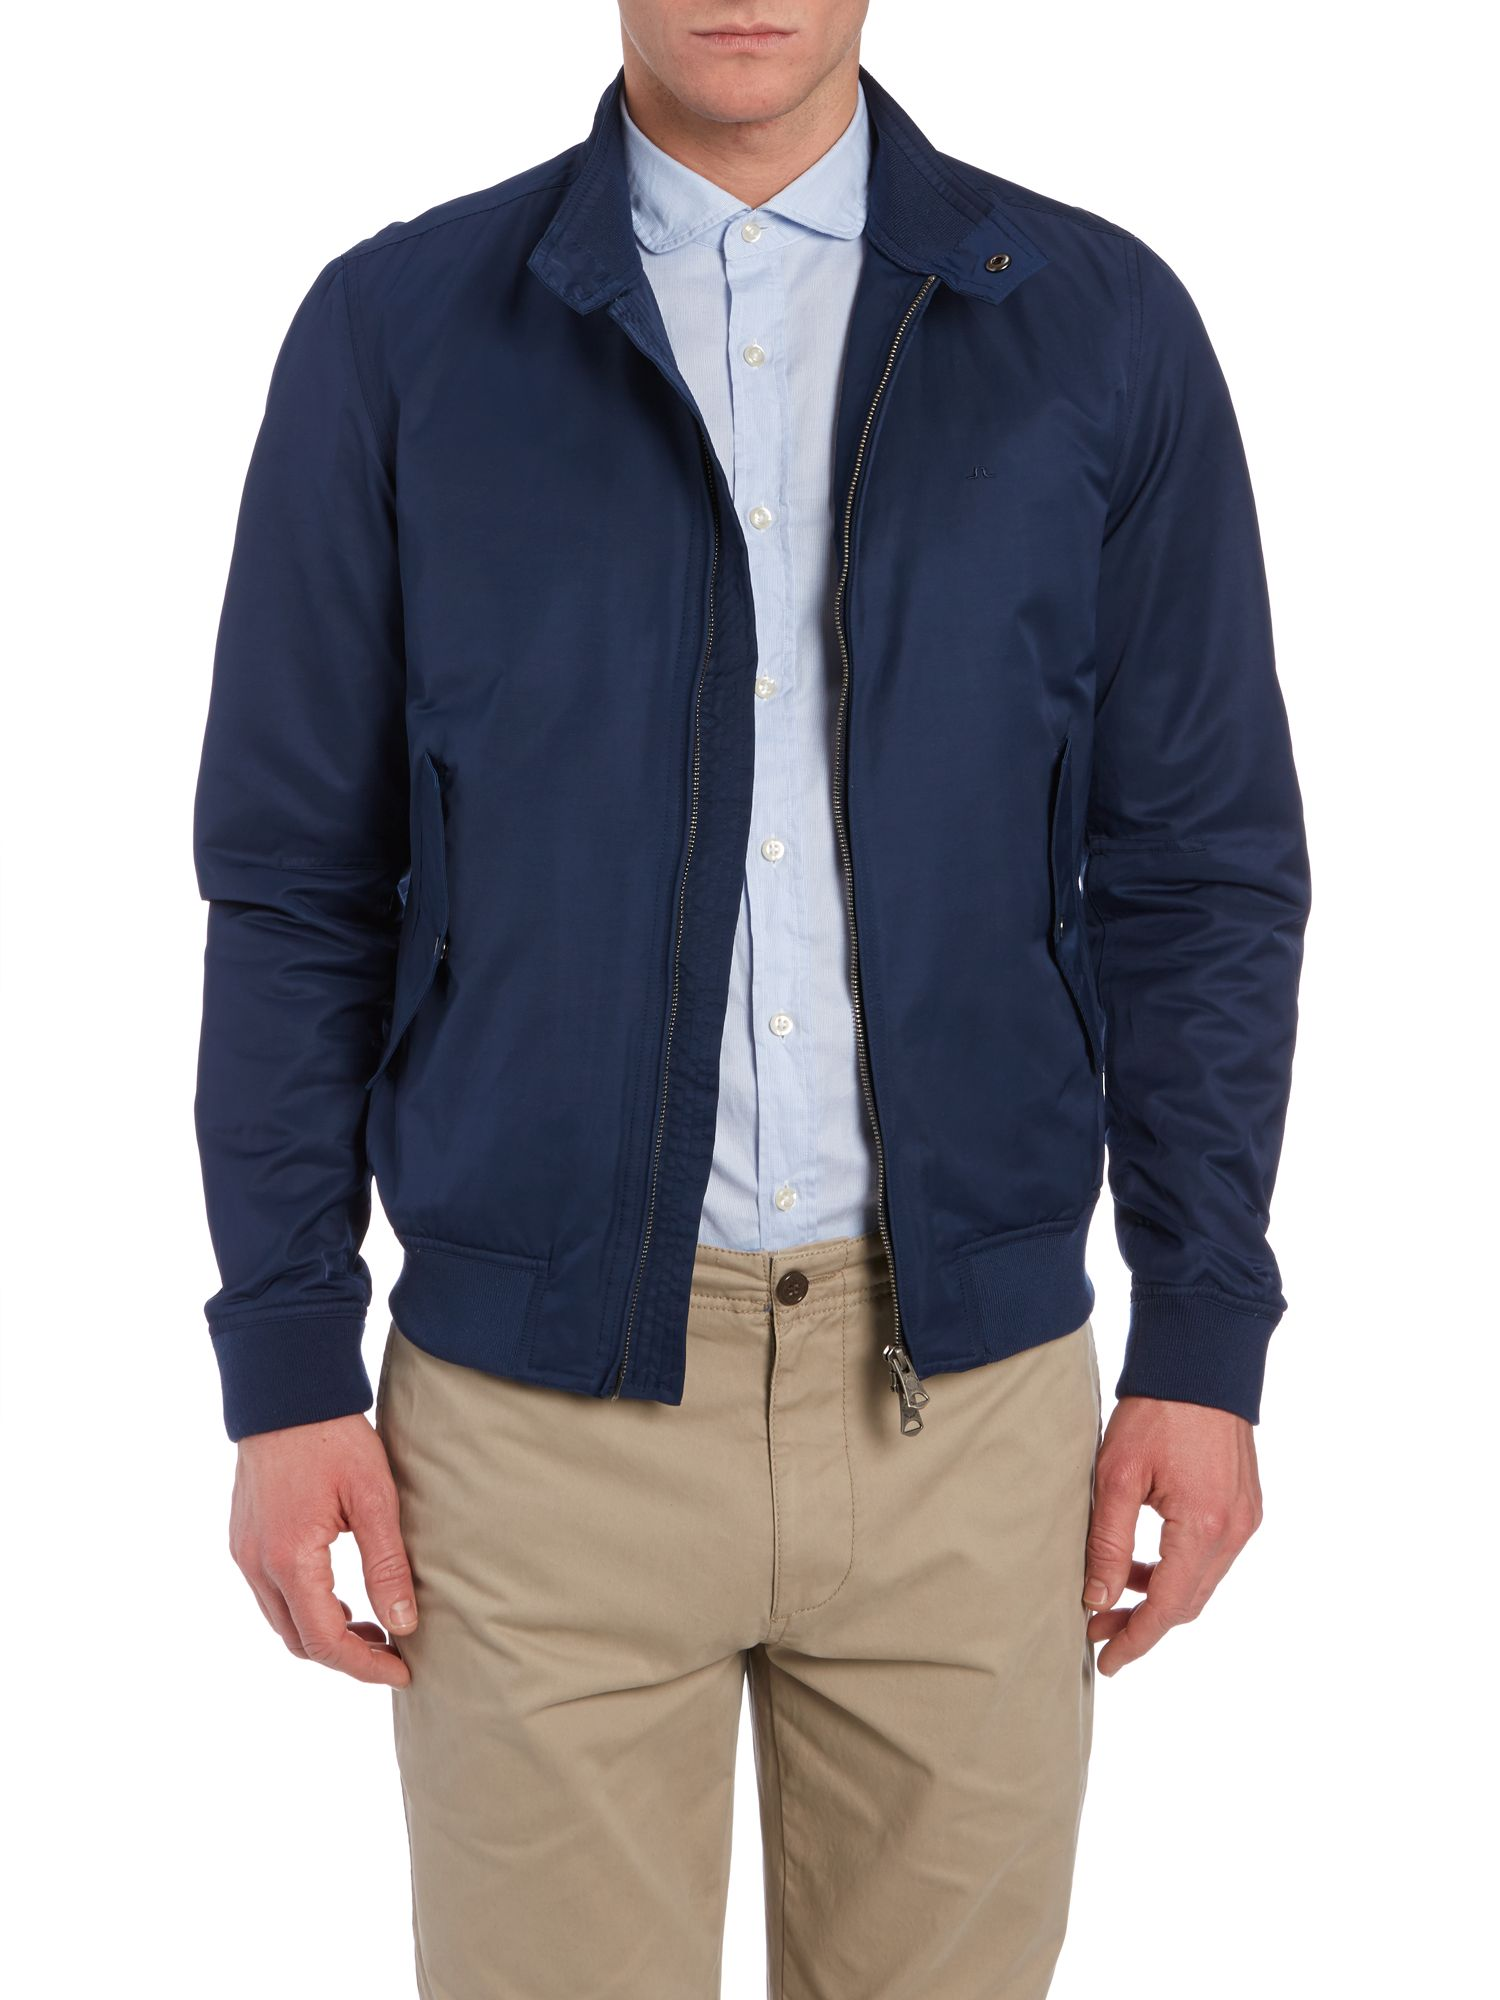 Harrington zip up jacket